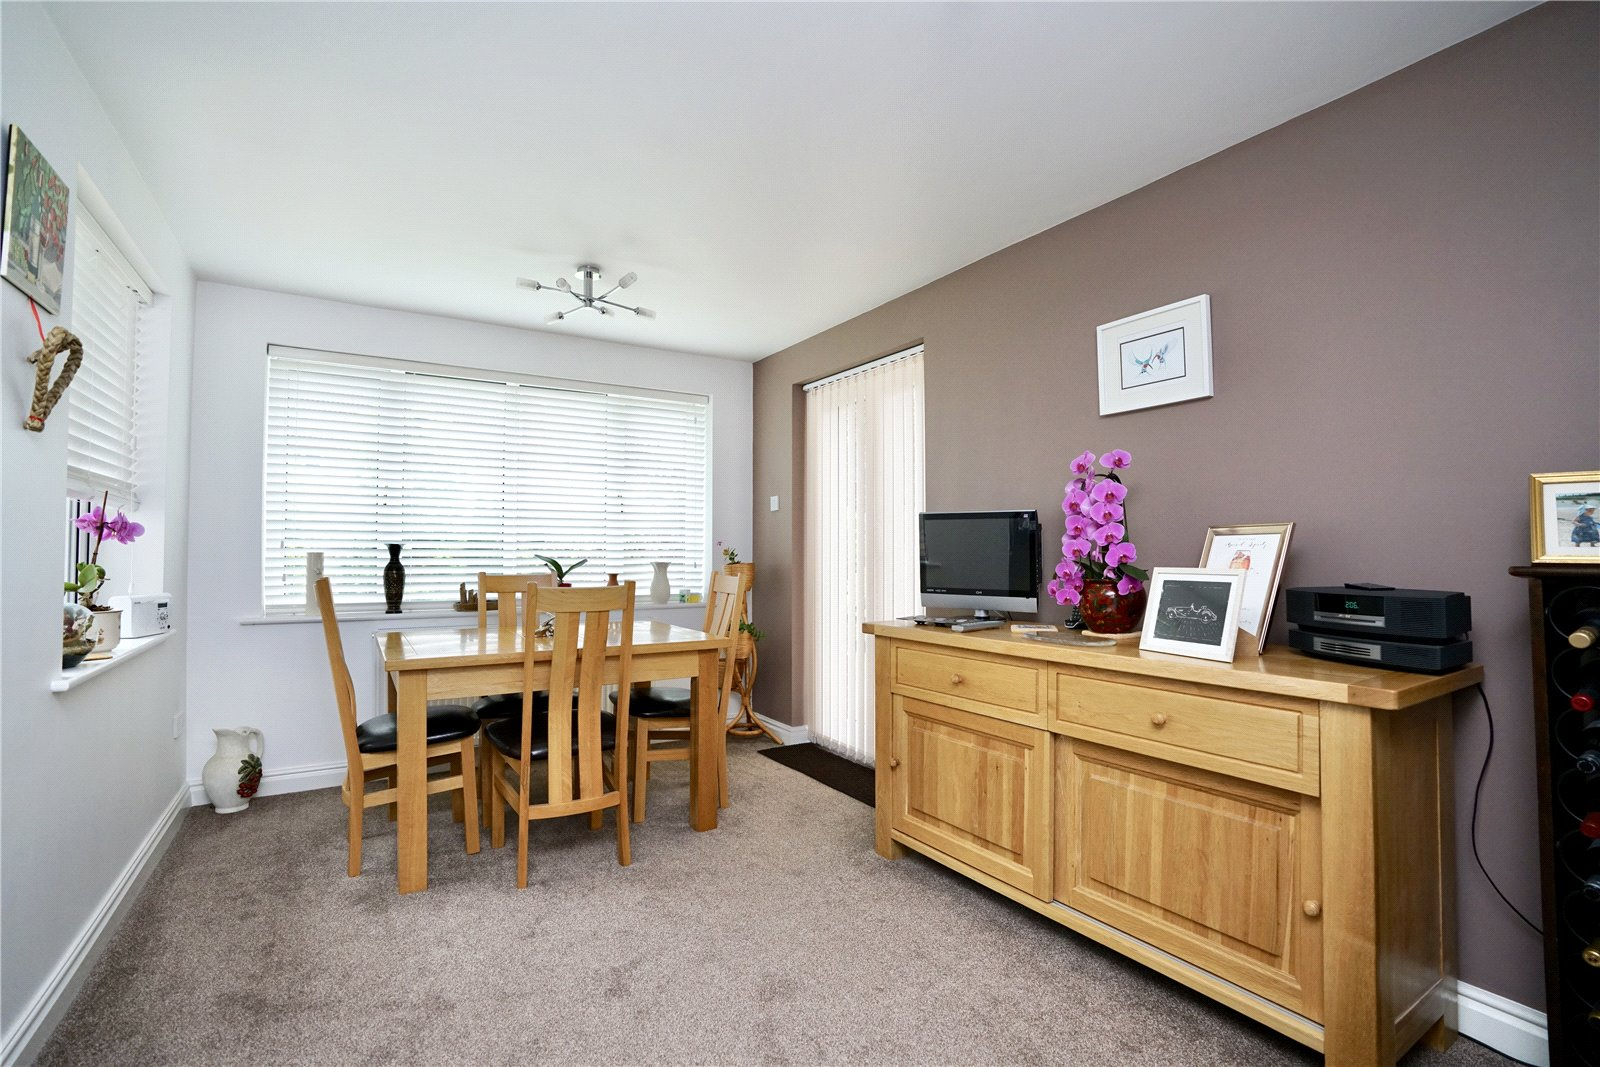 4 bed house for sale in Great Gransden 3